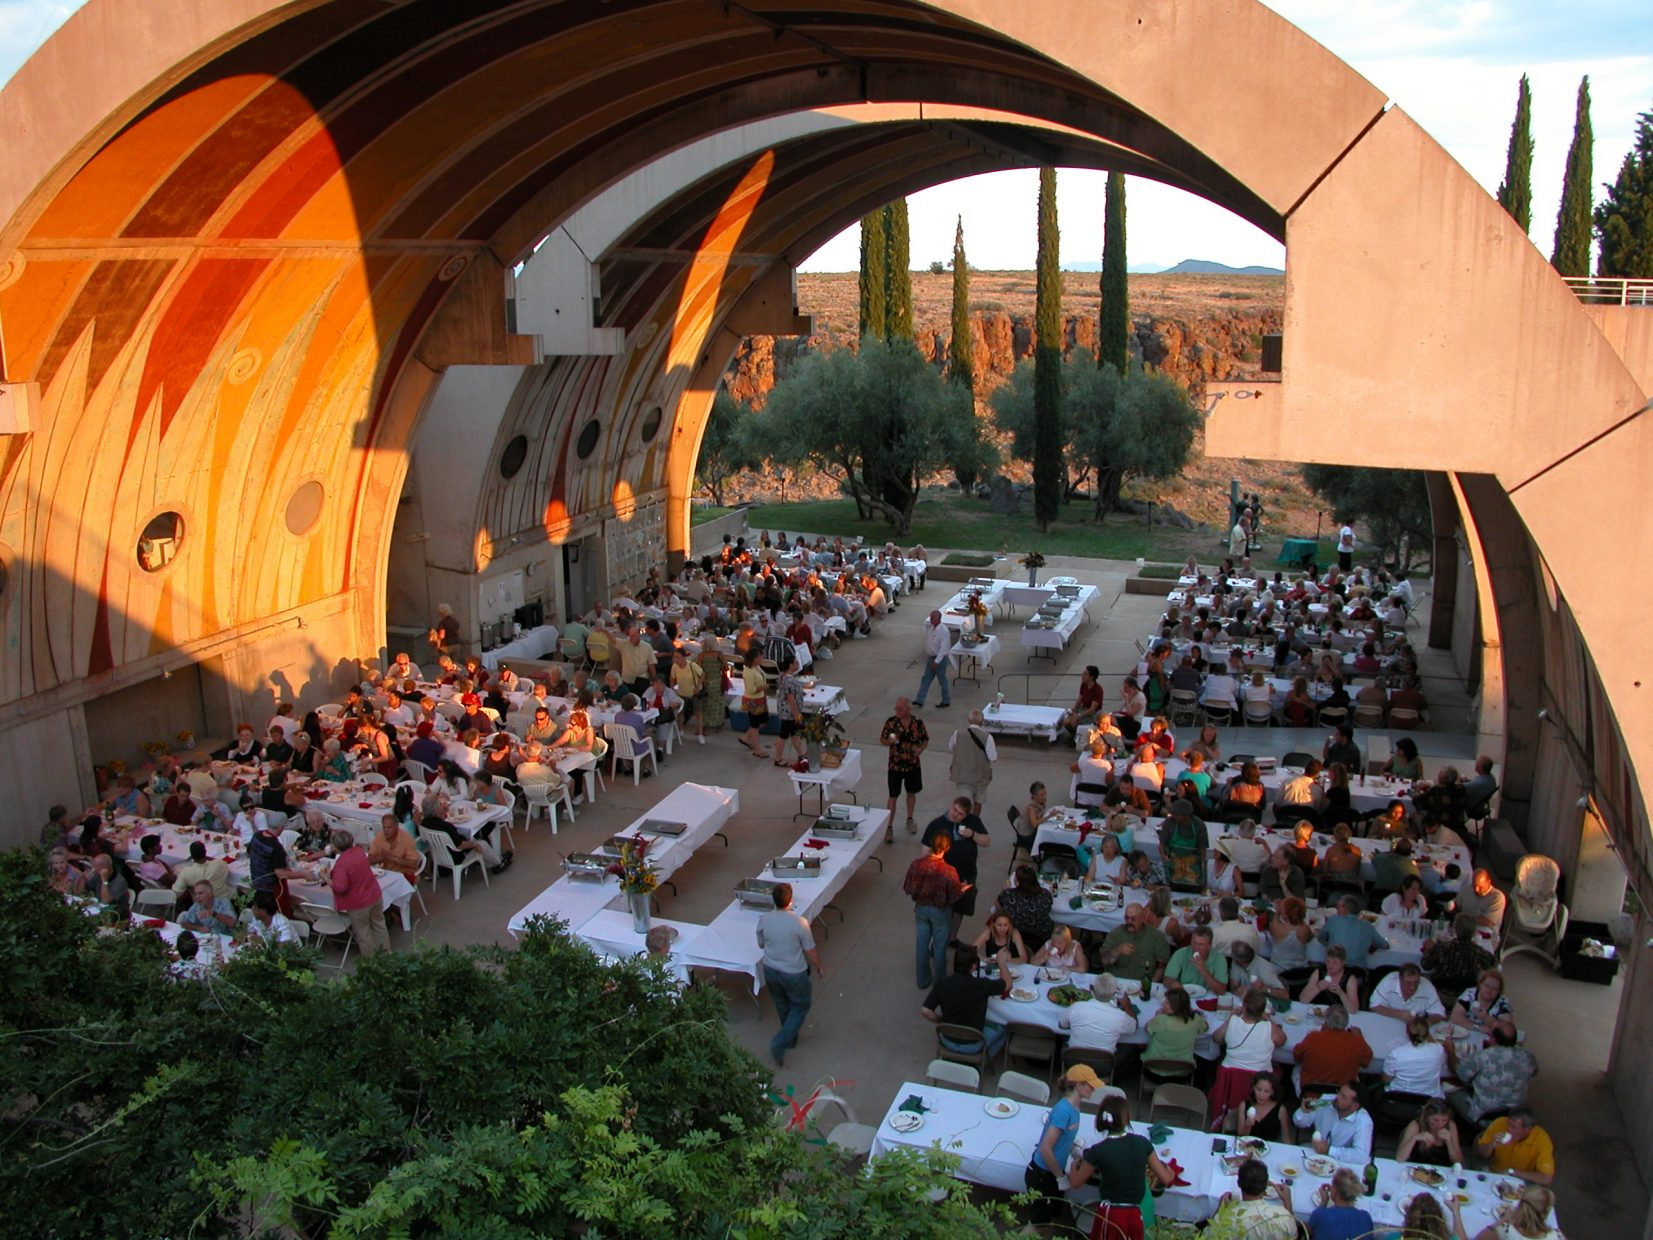 Event under Vaulted Structure at Arcosanti